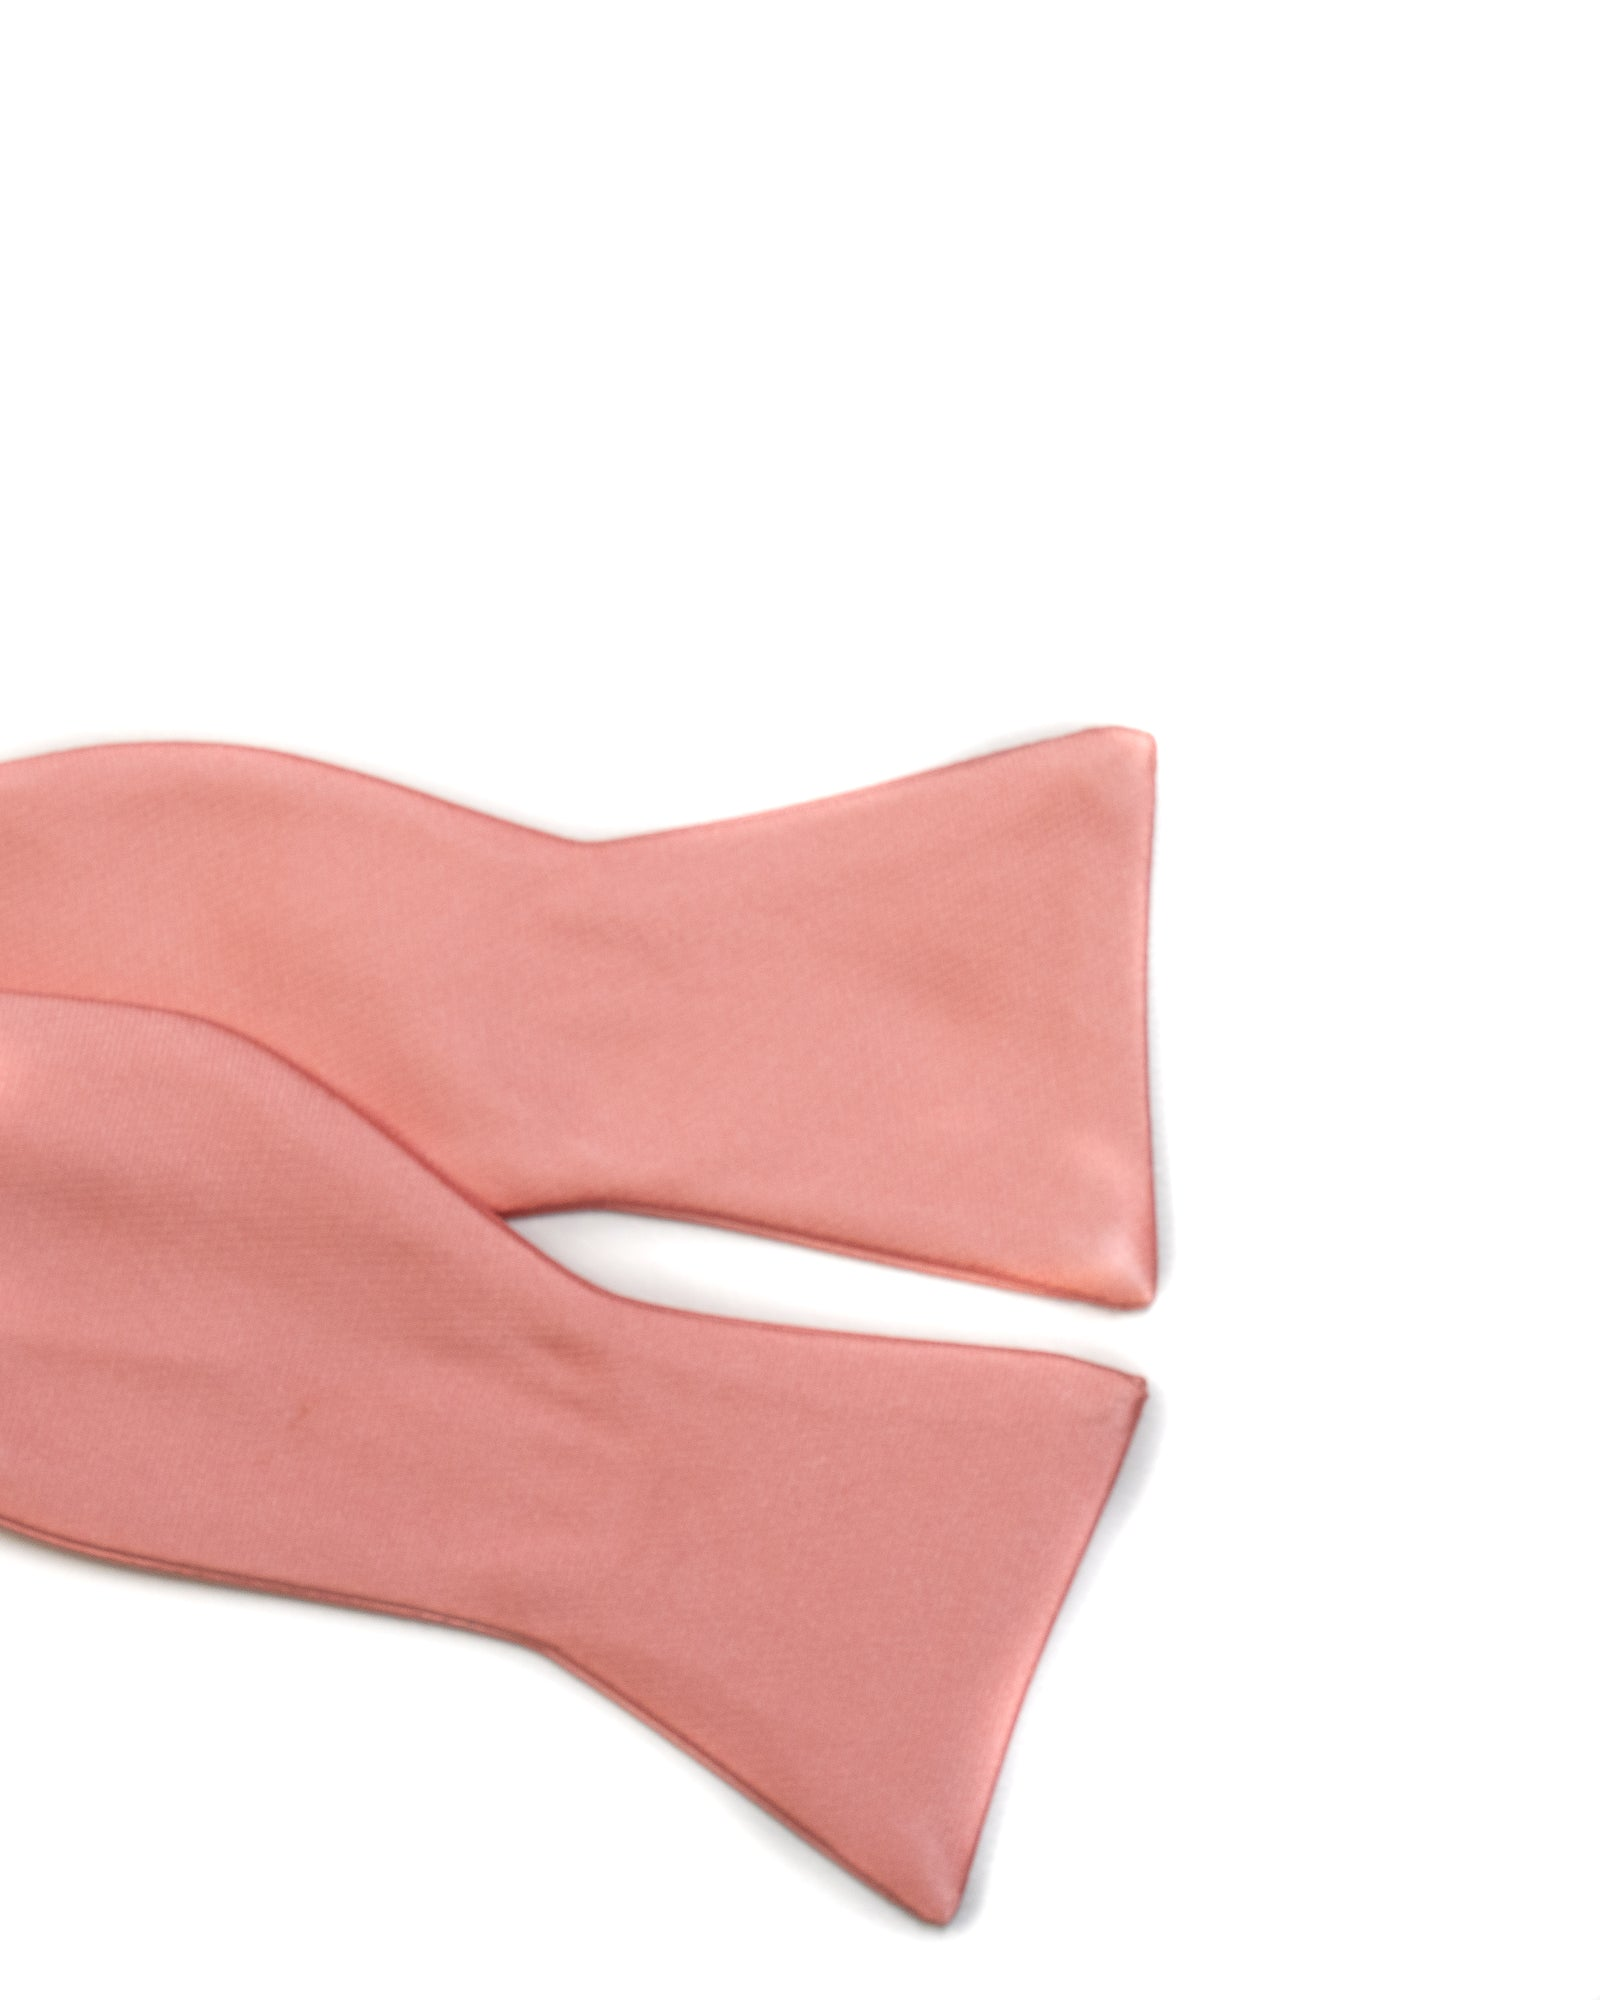 Self Tie Bow Tie In Solid Peach - Rainwater's Men's Clothing and Tuxedo Rental